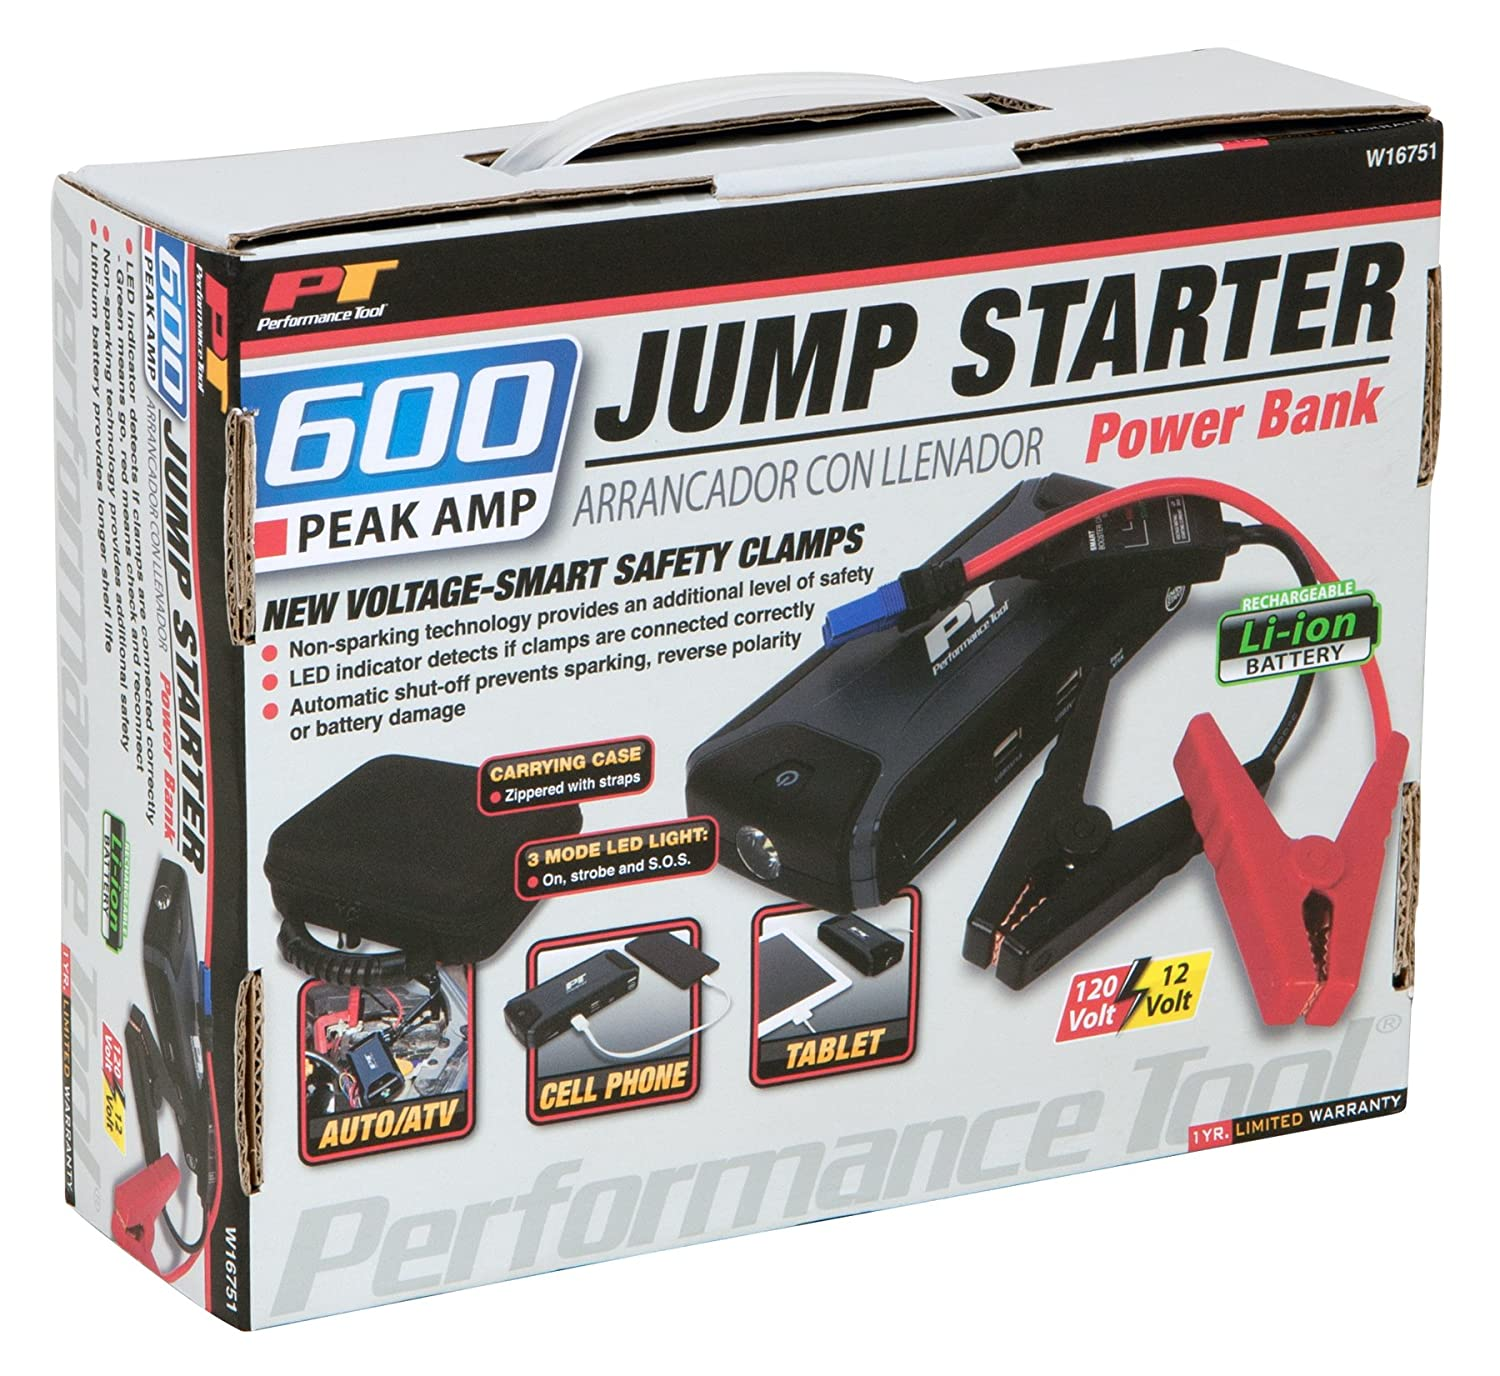 amazon com performance tool w16751 emergency jump starter with